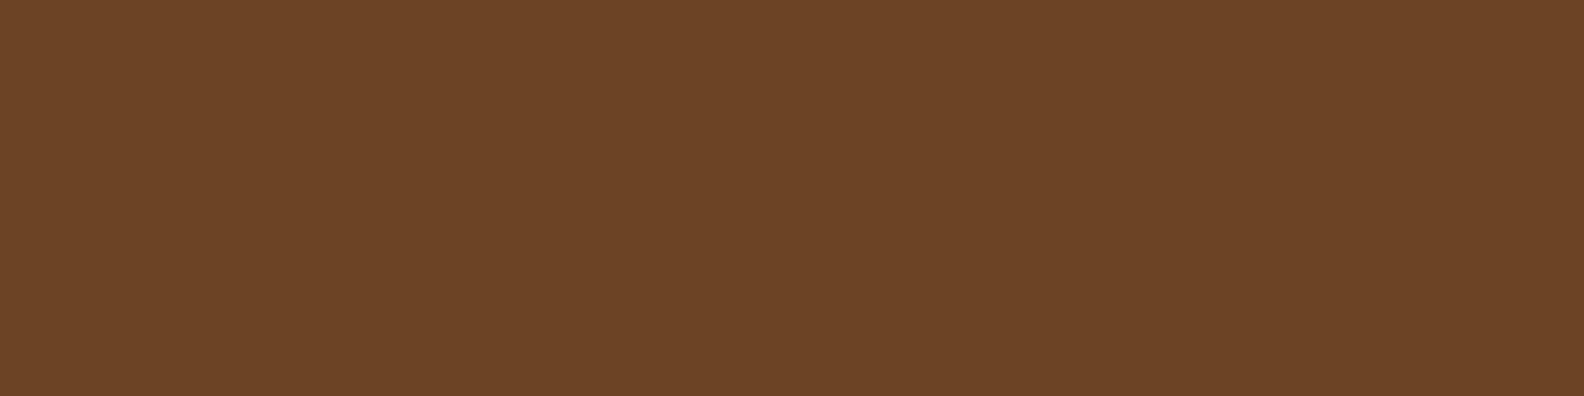 1584x396 Brown-nose Solid Color Background